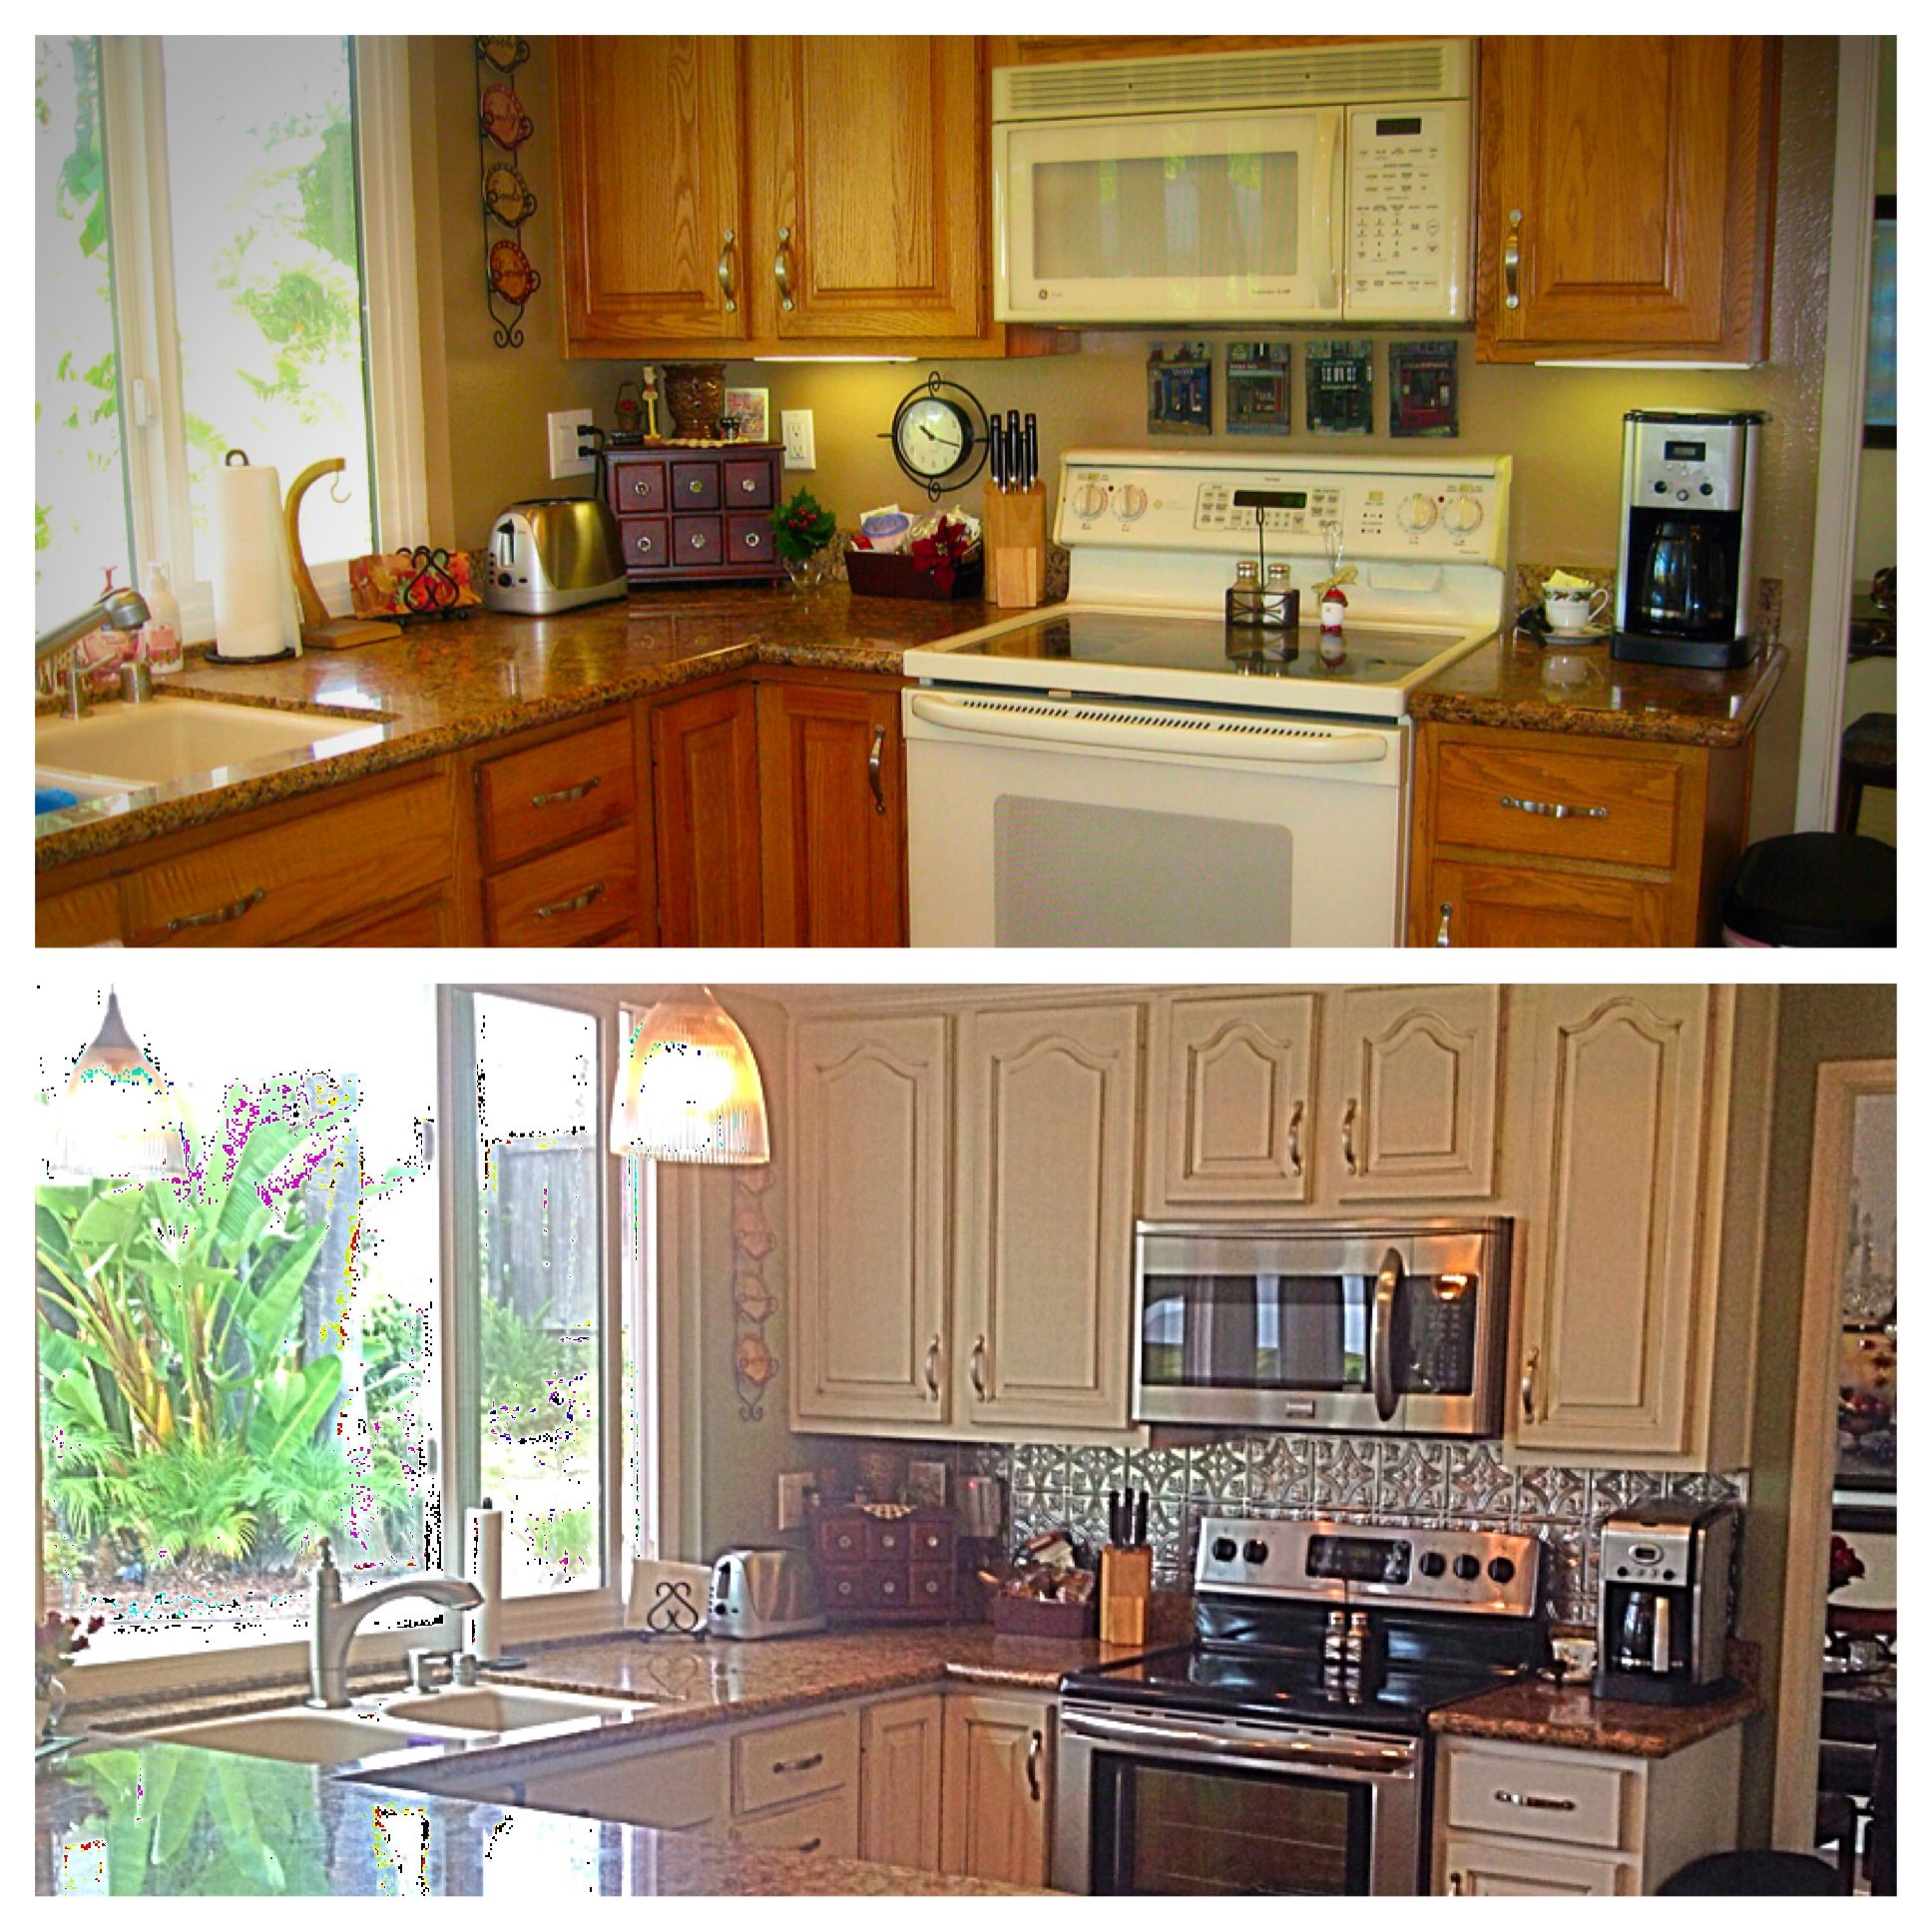 Kitchens With White Appliances And Oak Cabinets: Kitchen DIY Remodel. Painted Oak Cabinets Off White And